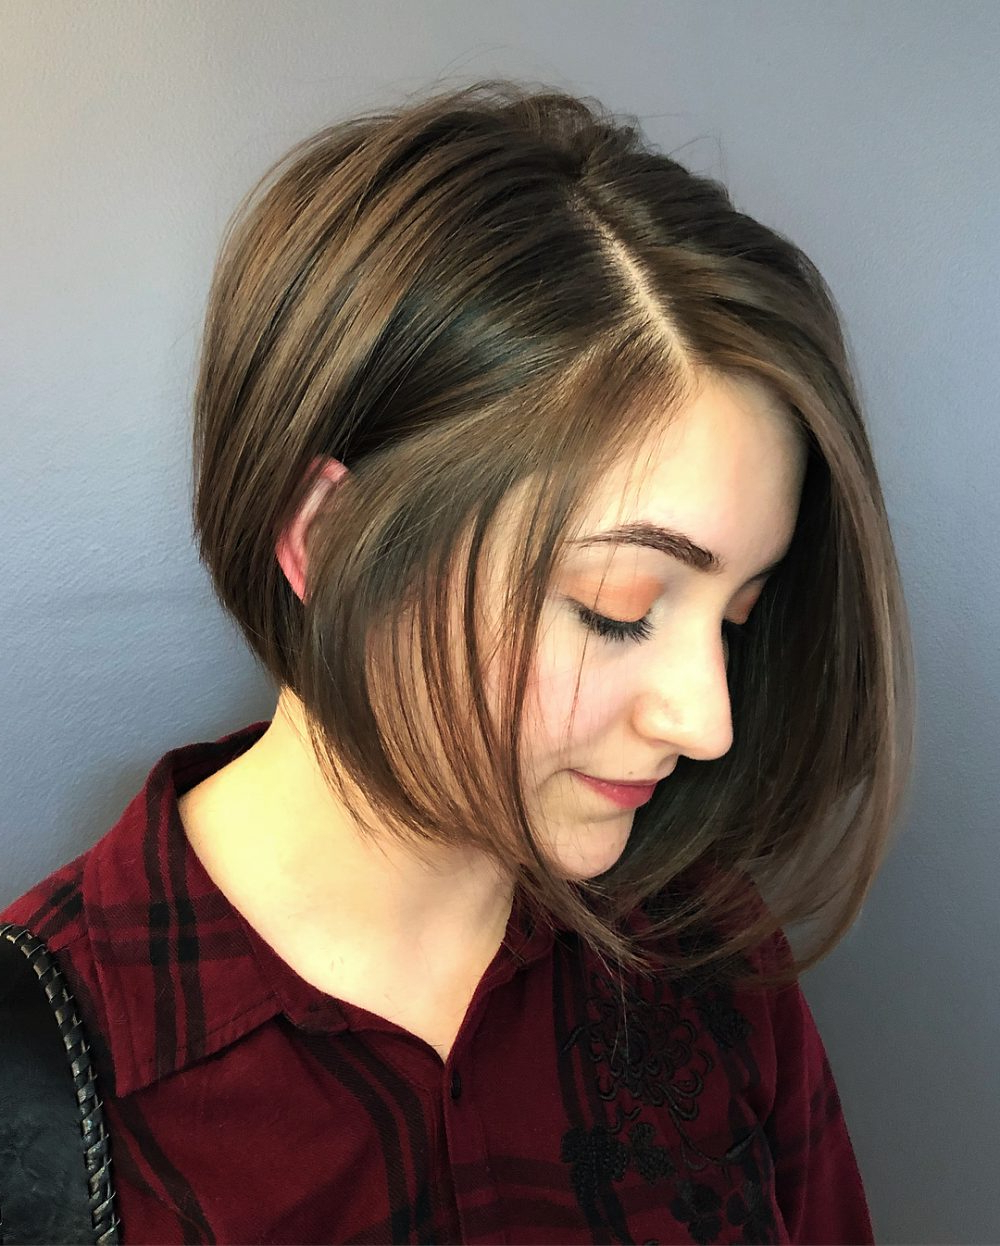 33 Flattering Short Hairstyles For Round Faces In 2018 For Short Short Haircuts For Round Faces (View 6 of 25)